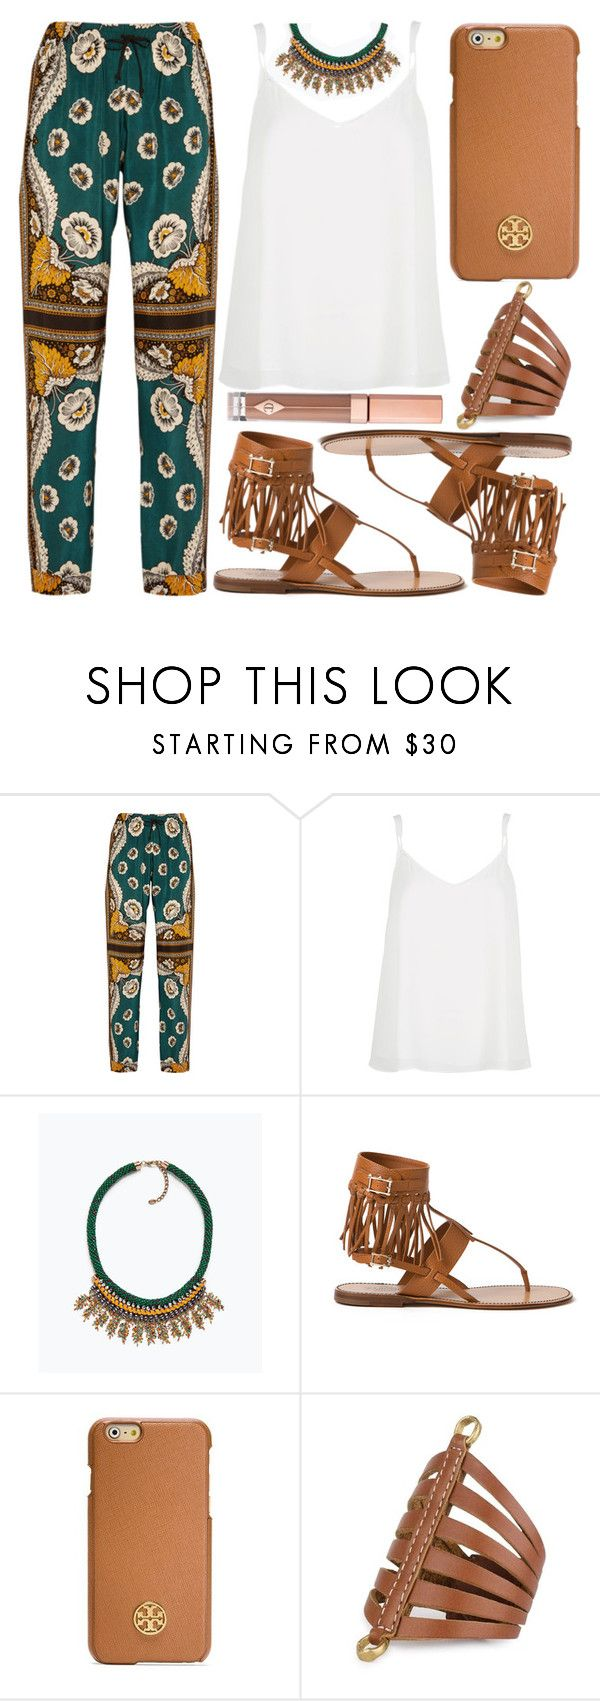 """""""street style"""" by sisaez ❤ liked on Polyvore featuring мода, Valentino, River Island, Zara, Tory Burch и Charlotte Tilbury"""